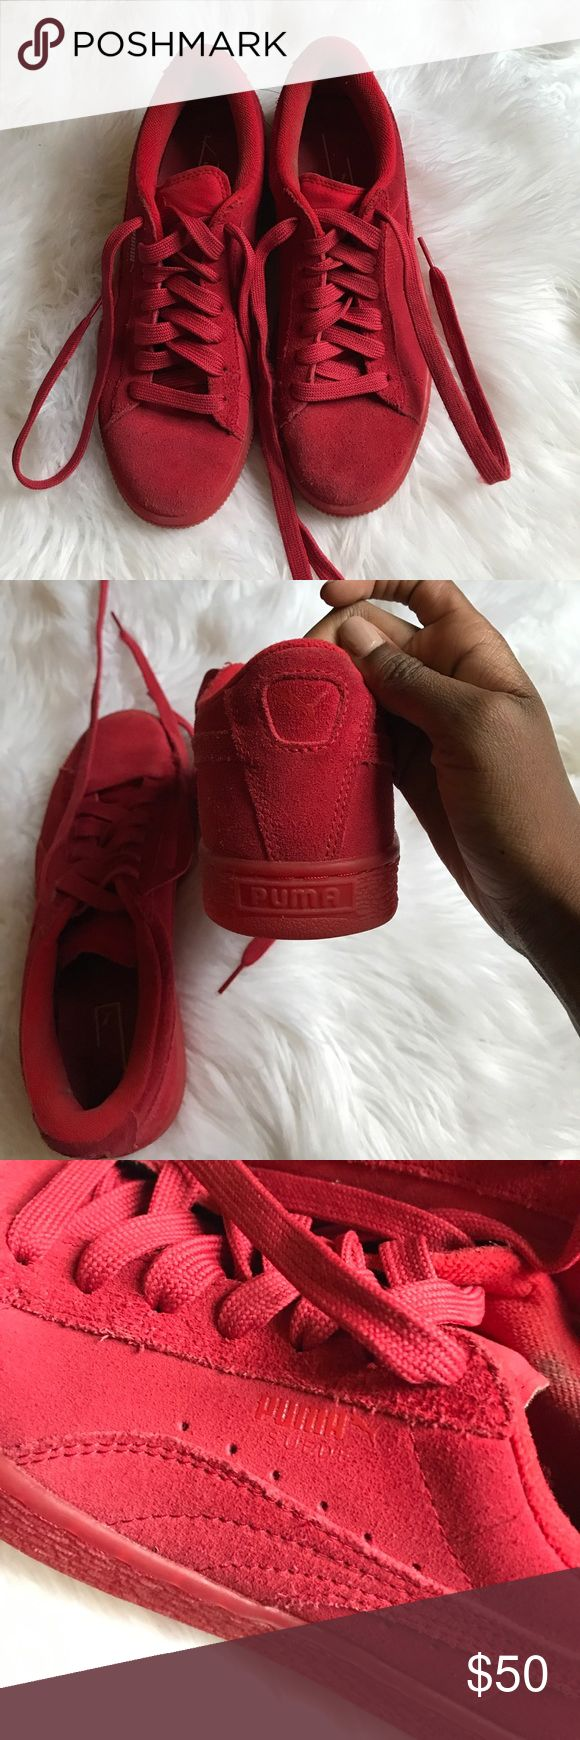 Red suede Pumas In great condition! I've barely worn these. Will come in original box. Puma Shoes Sneakers